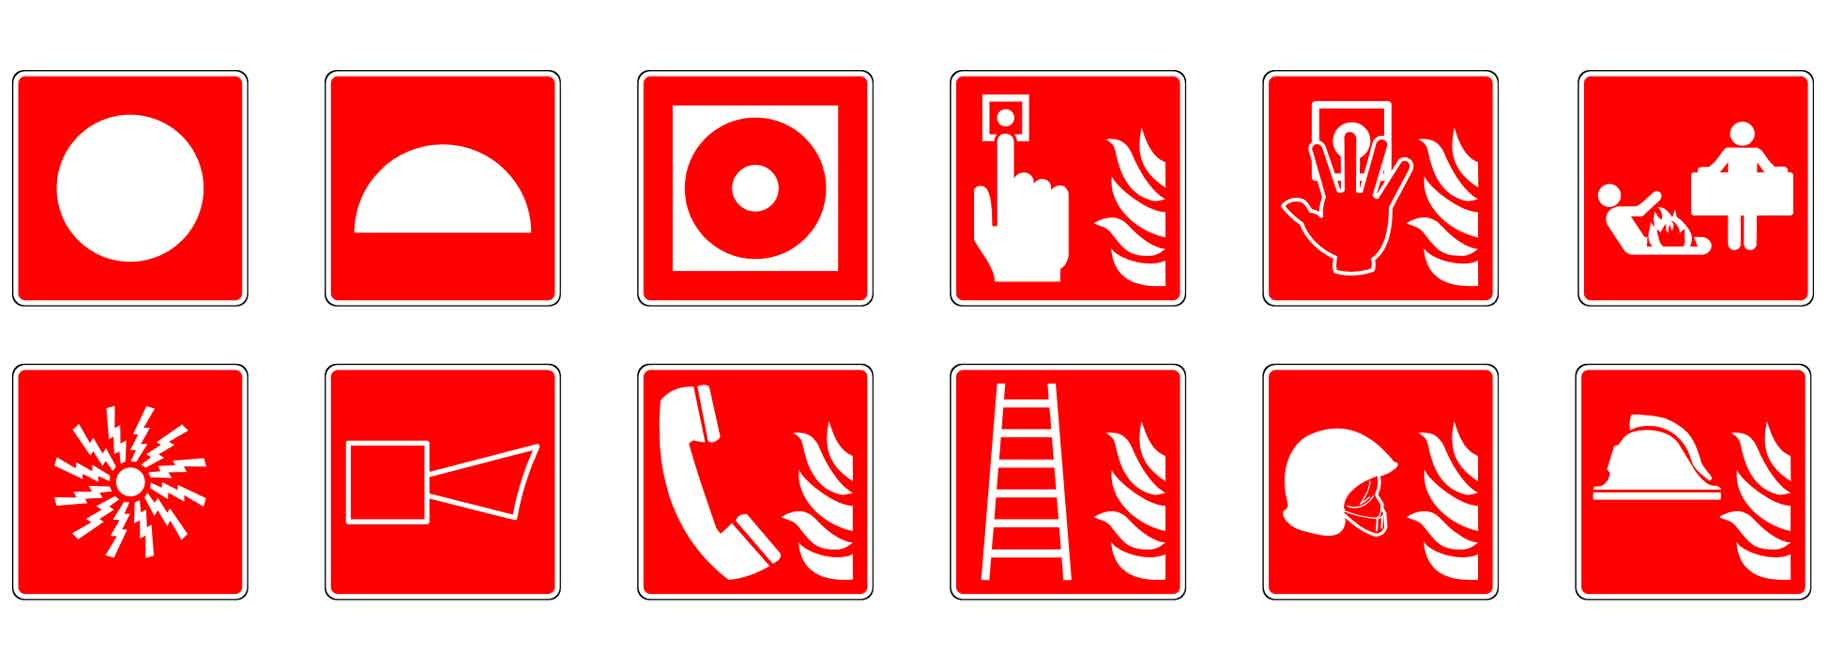 picture of fire safety symbols